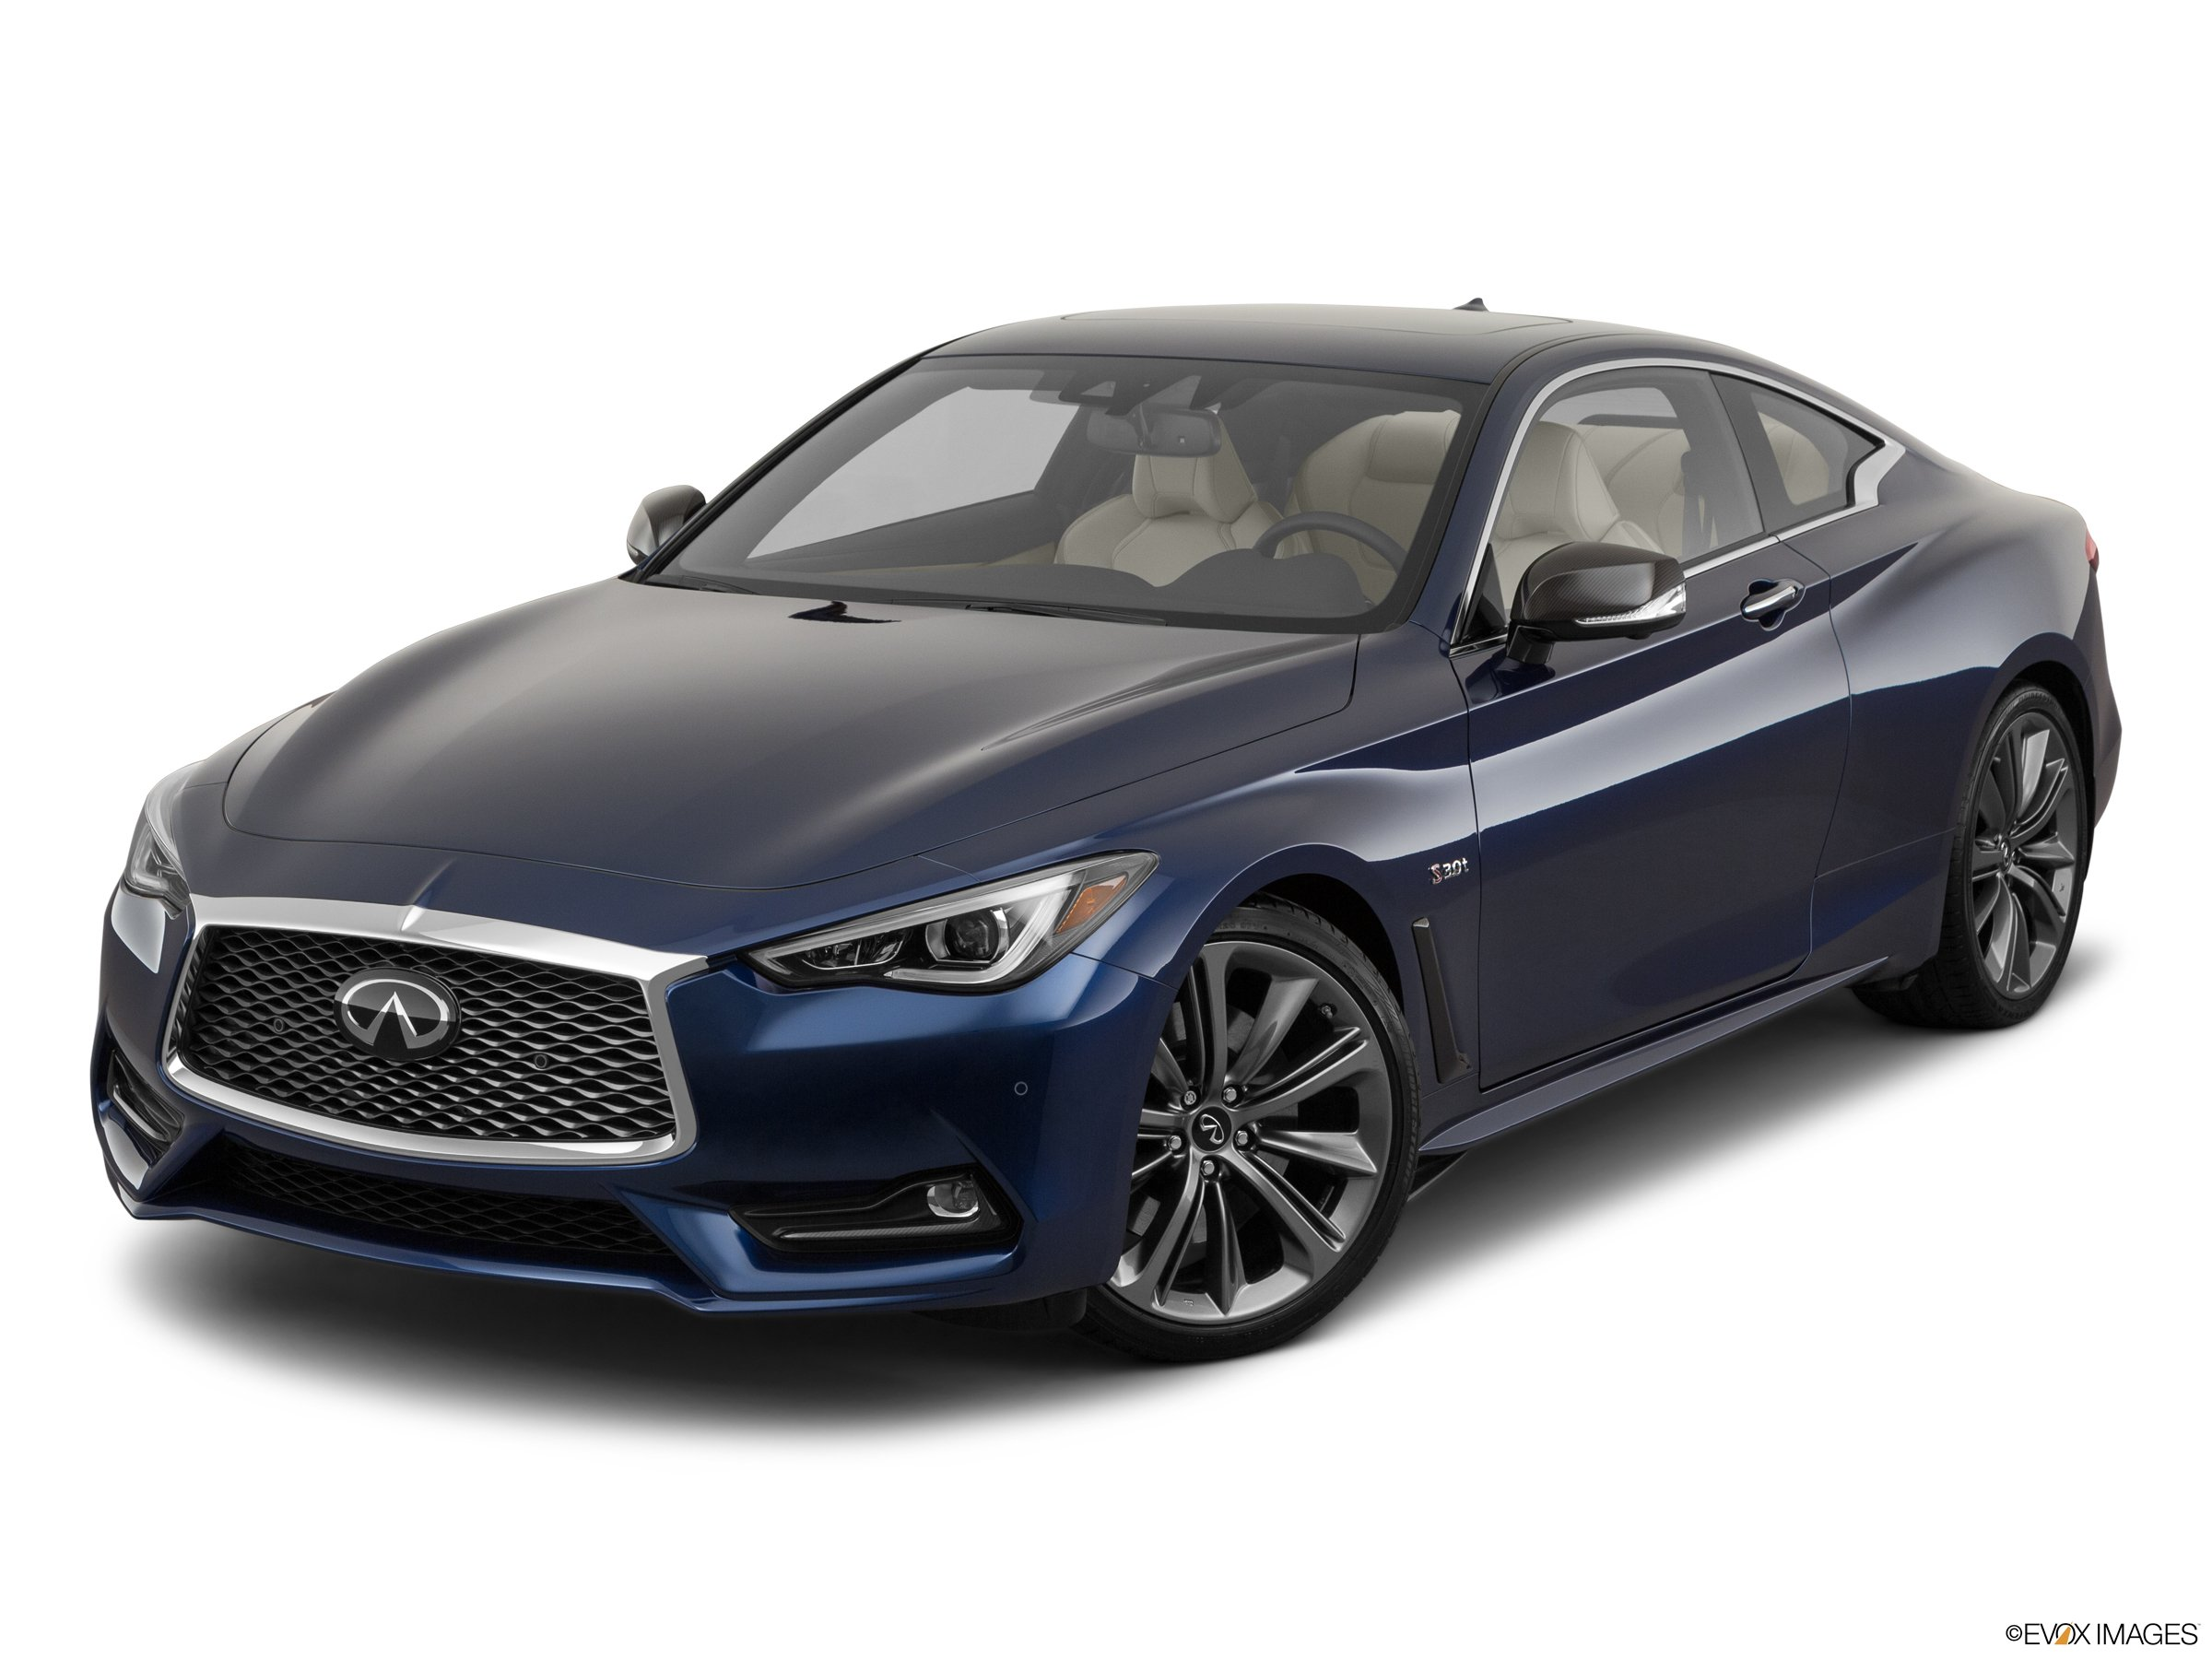 2020 Infiniti Q60 Red Sport 400 RWD coupe